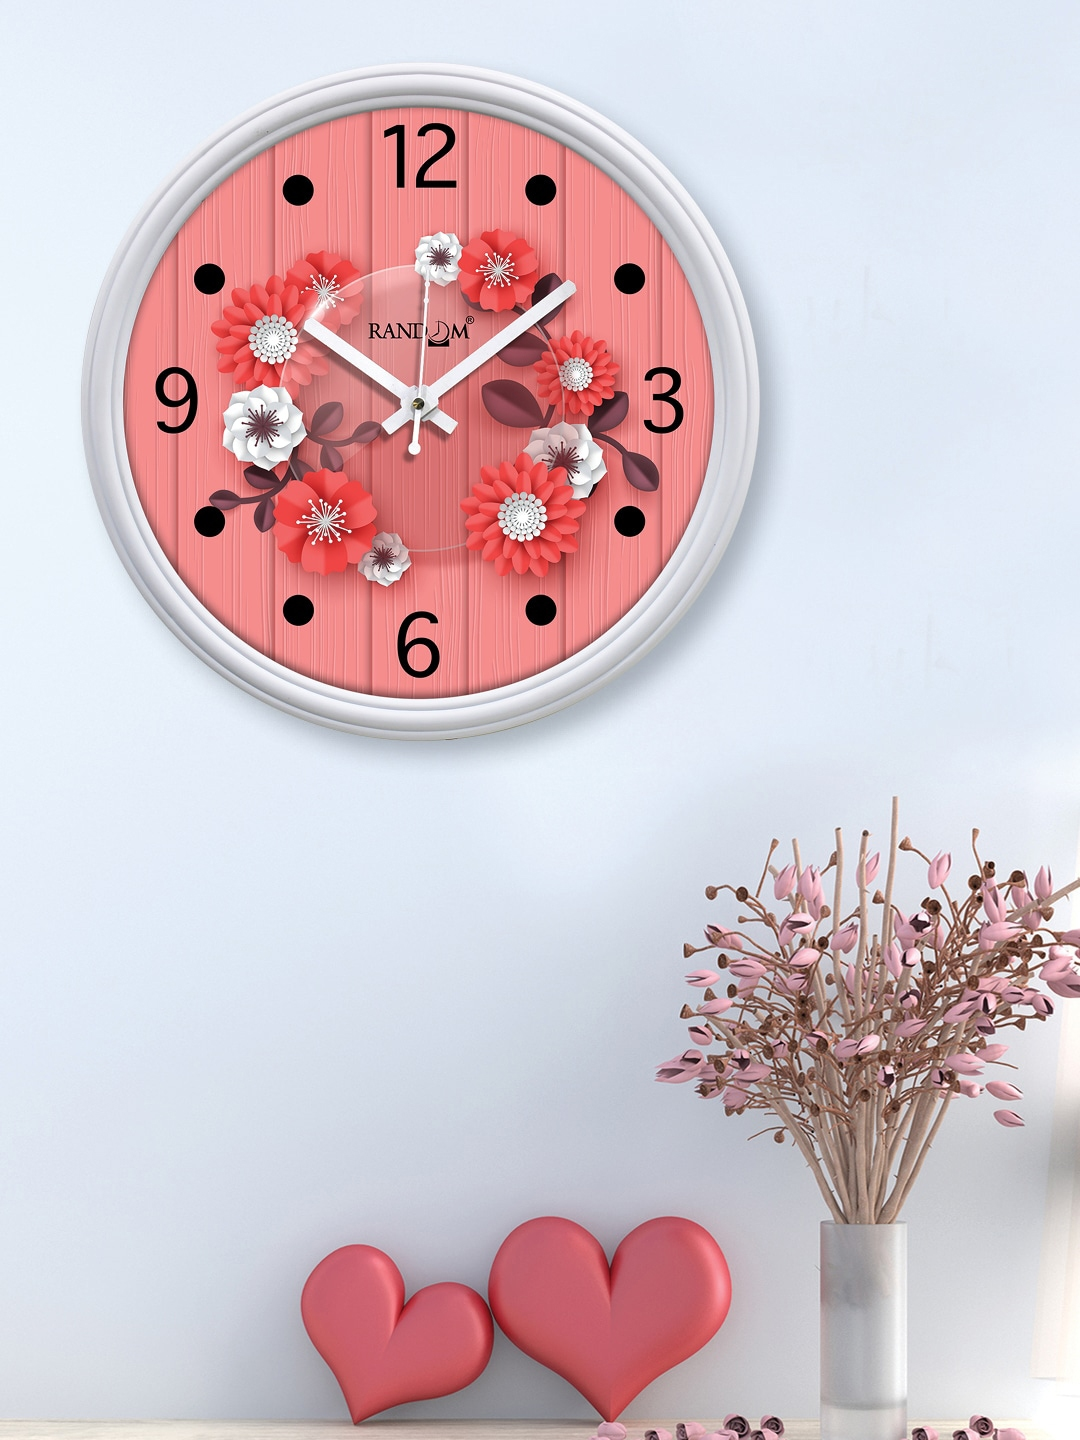 RANDOM White   Pink Printed Contemporary Wall Clock 12 inches